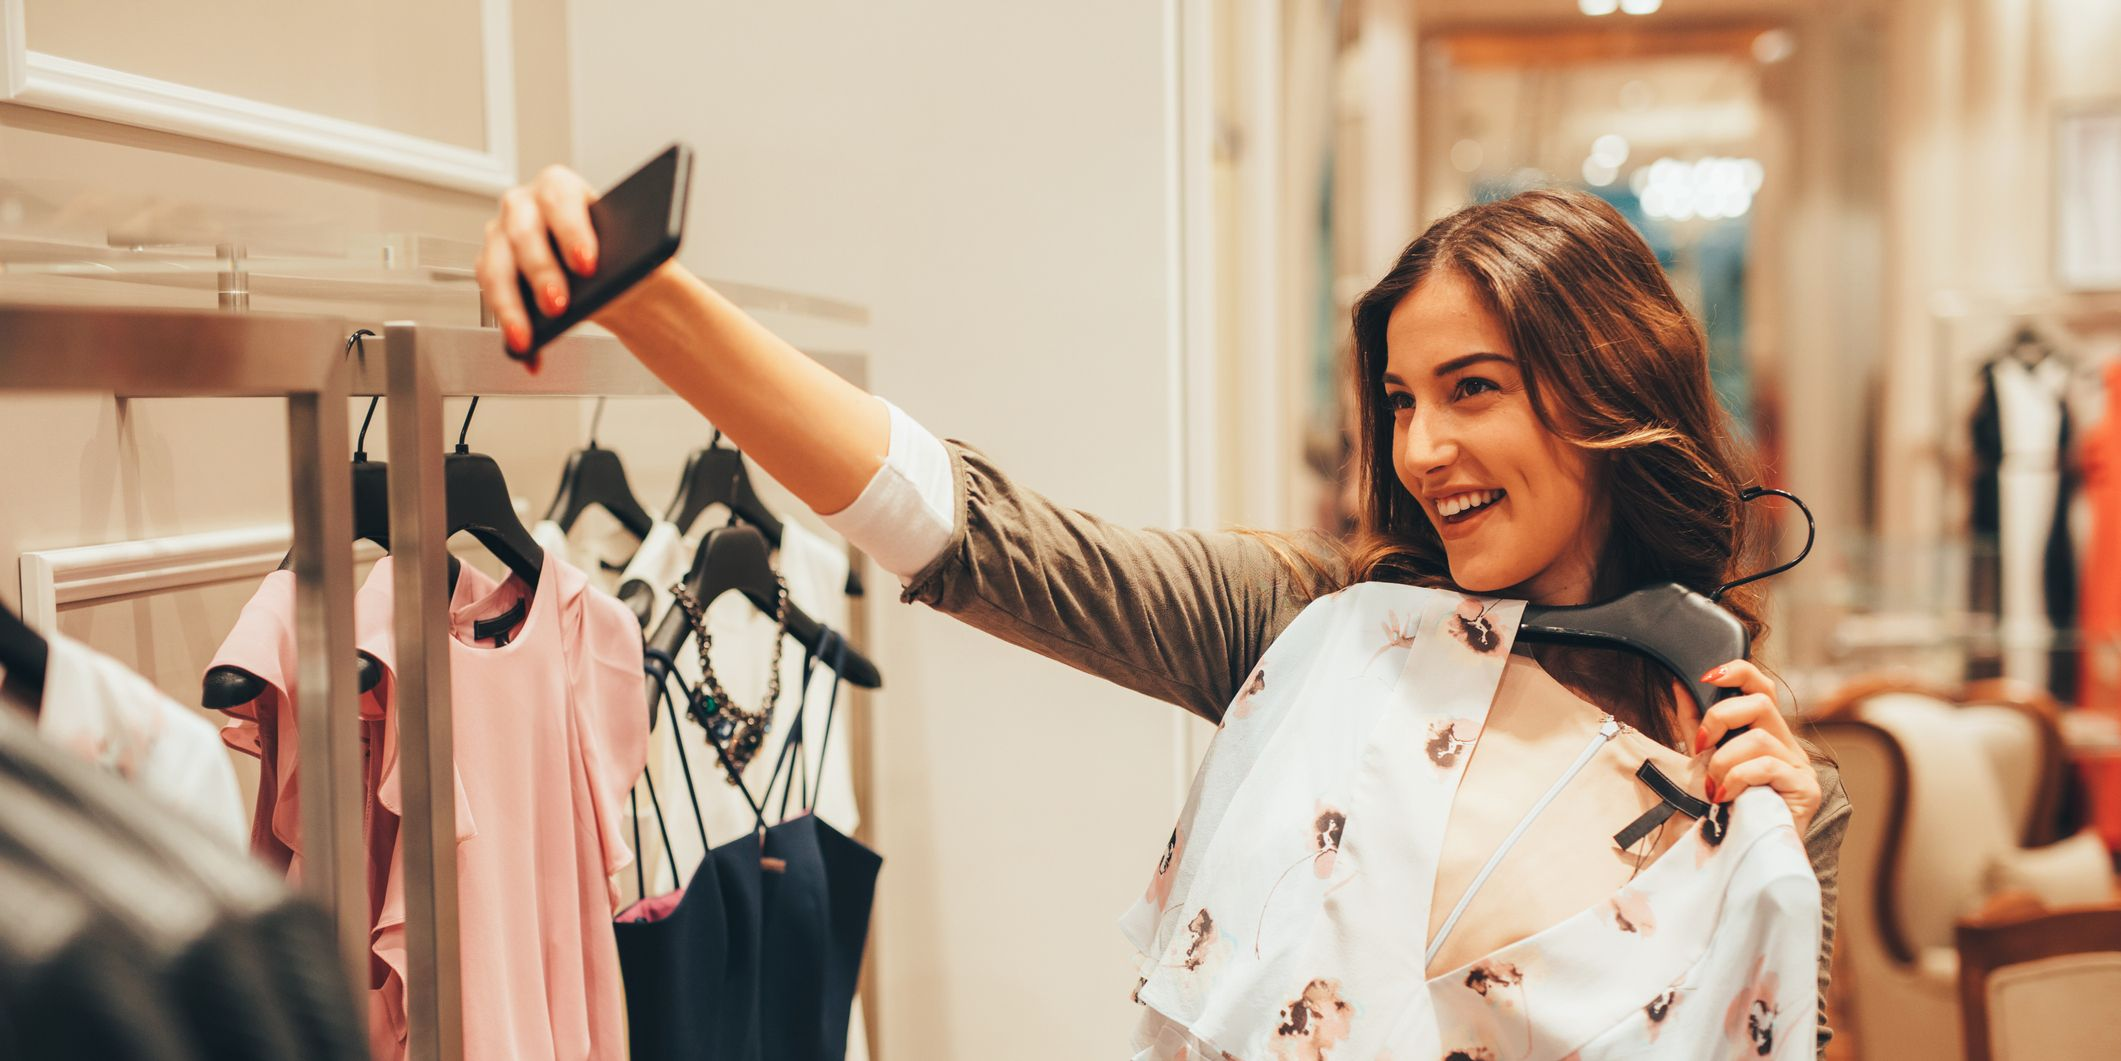 Woman taking a selfie with a blouse in a clothing store